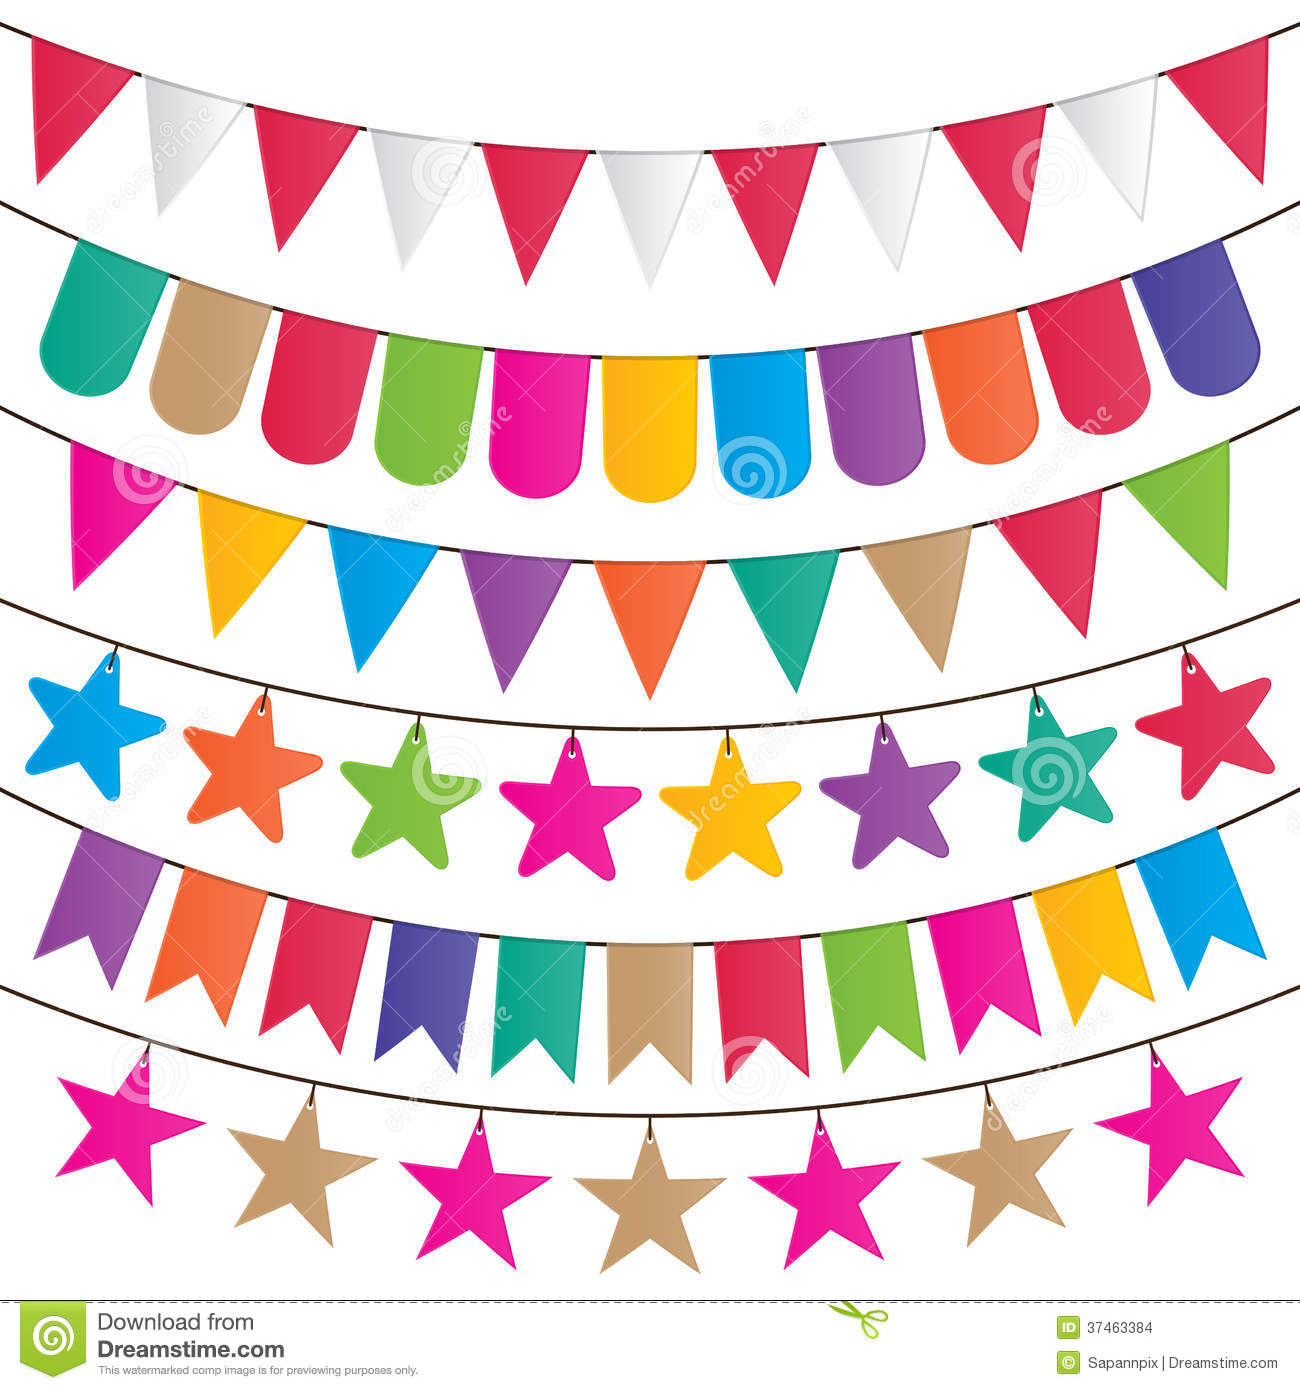 Stock Images Party Flags Bunting Garland Decoration Vector Set Image37463384 on fiesta bunting clip art